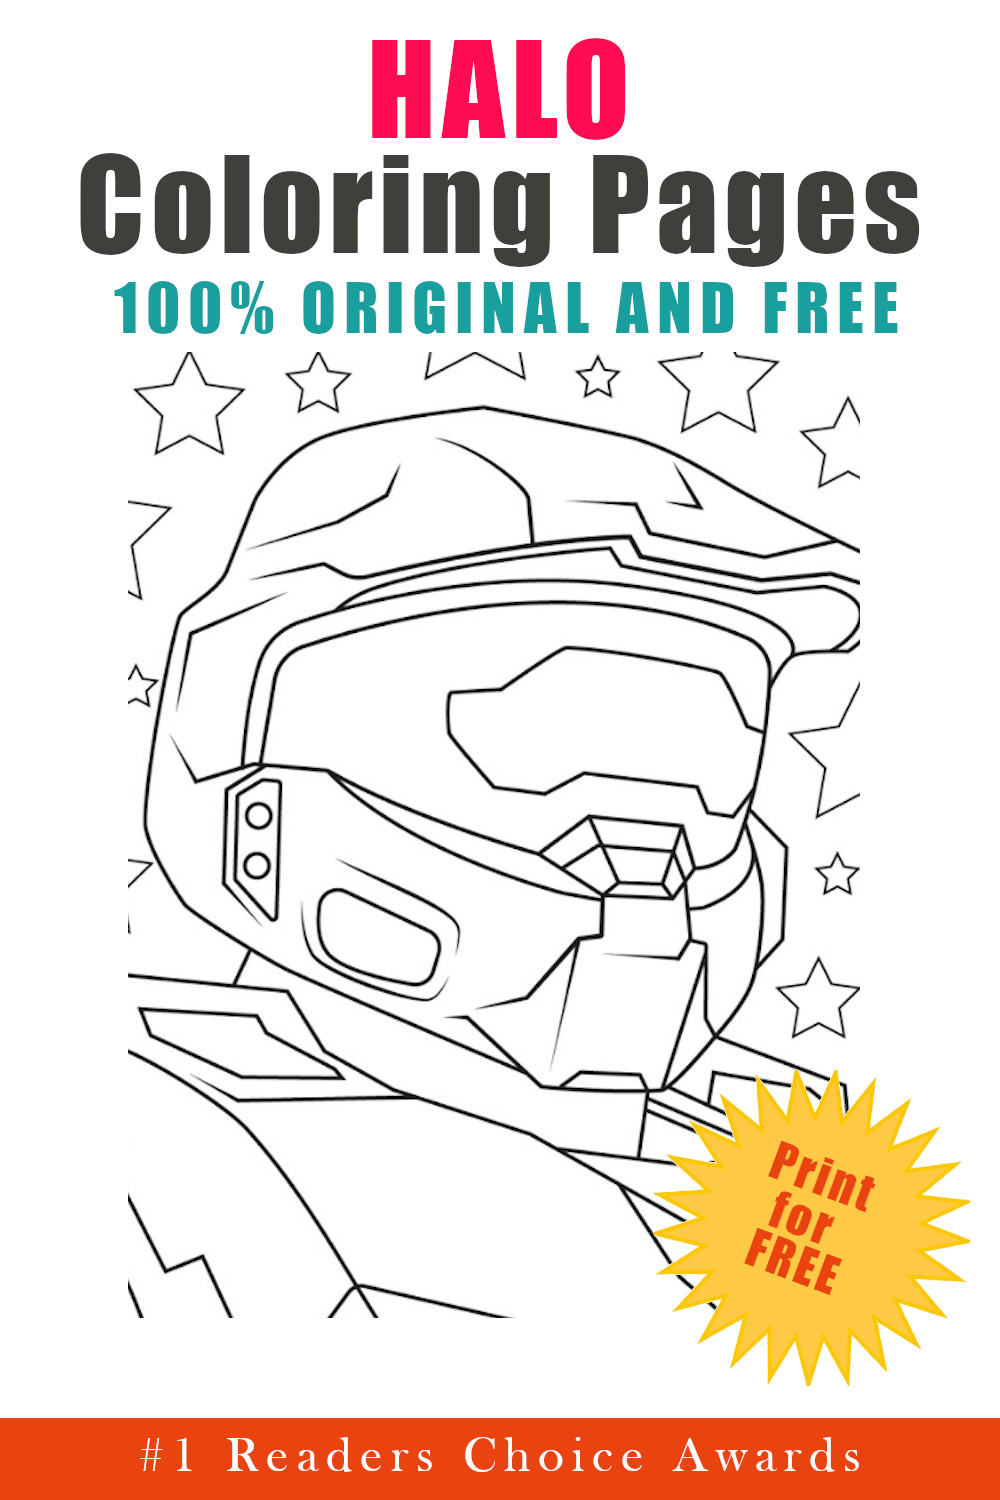 original and free halo coloring pages